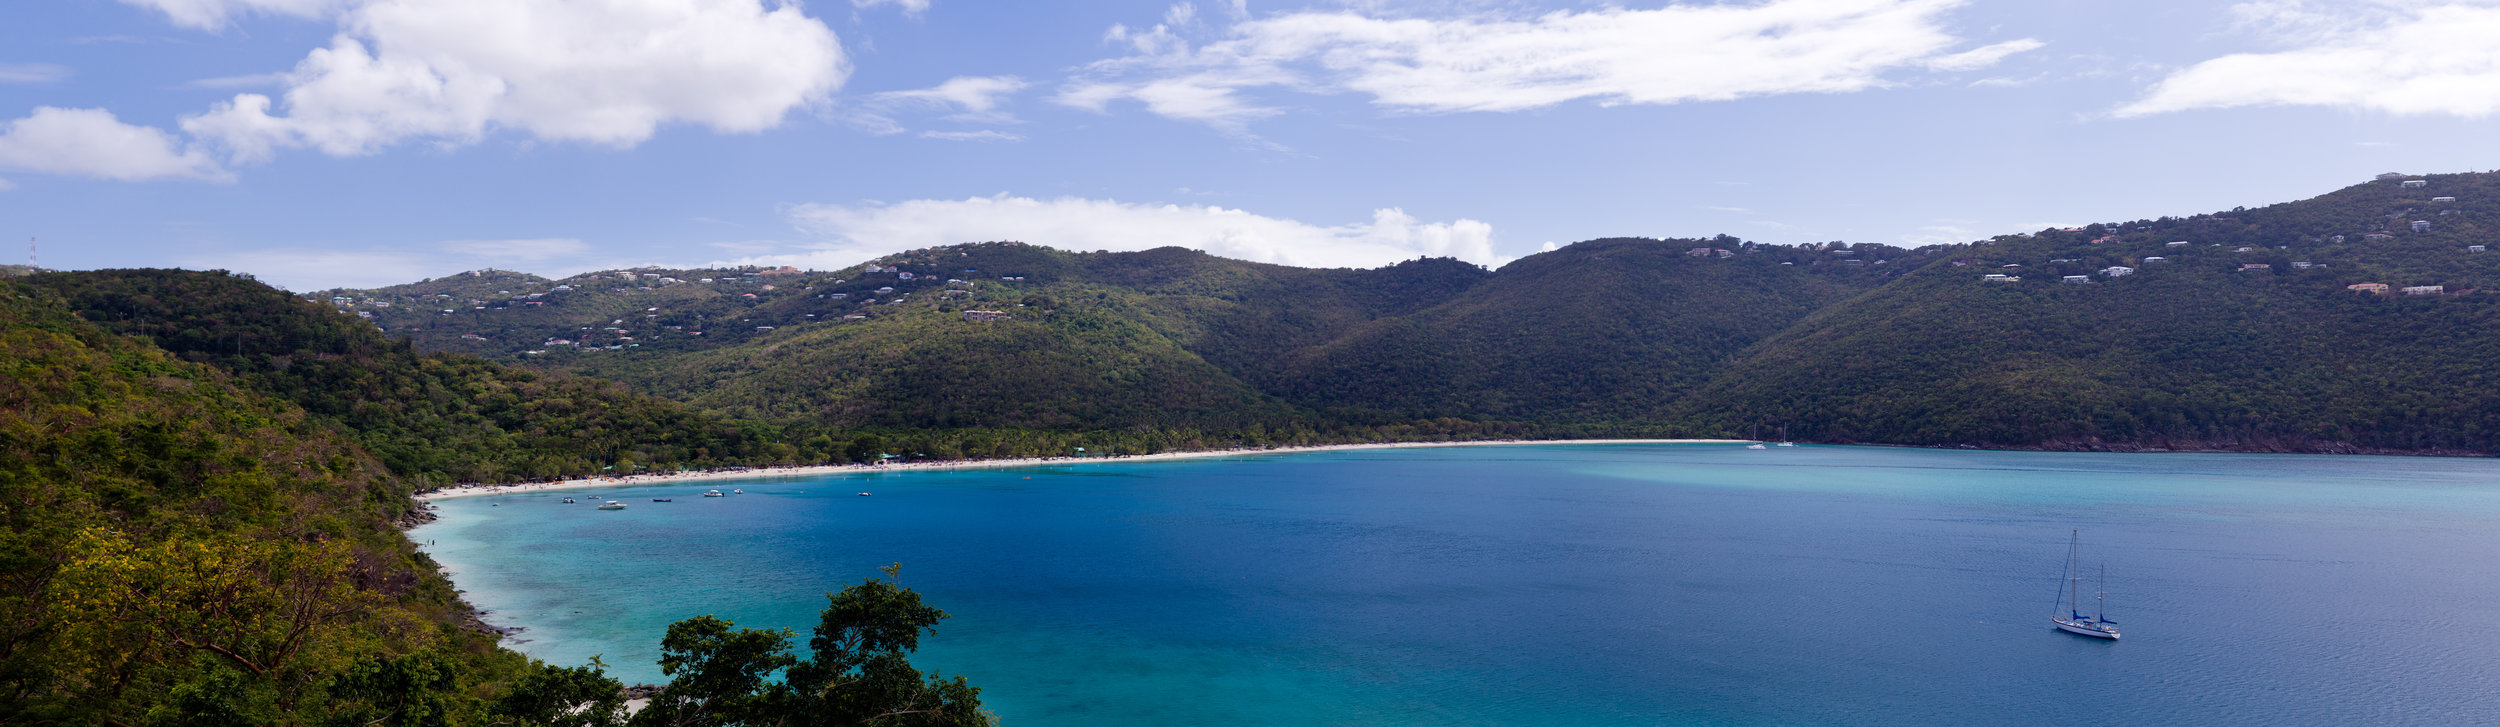 Magens Bay is located on the north side of St. Thomas within a 319 acre preserve gifted to the people of the U.S. Virgin Islands by Arthur S. Fairchild.